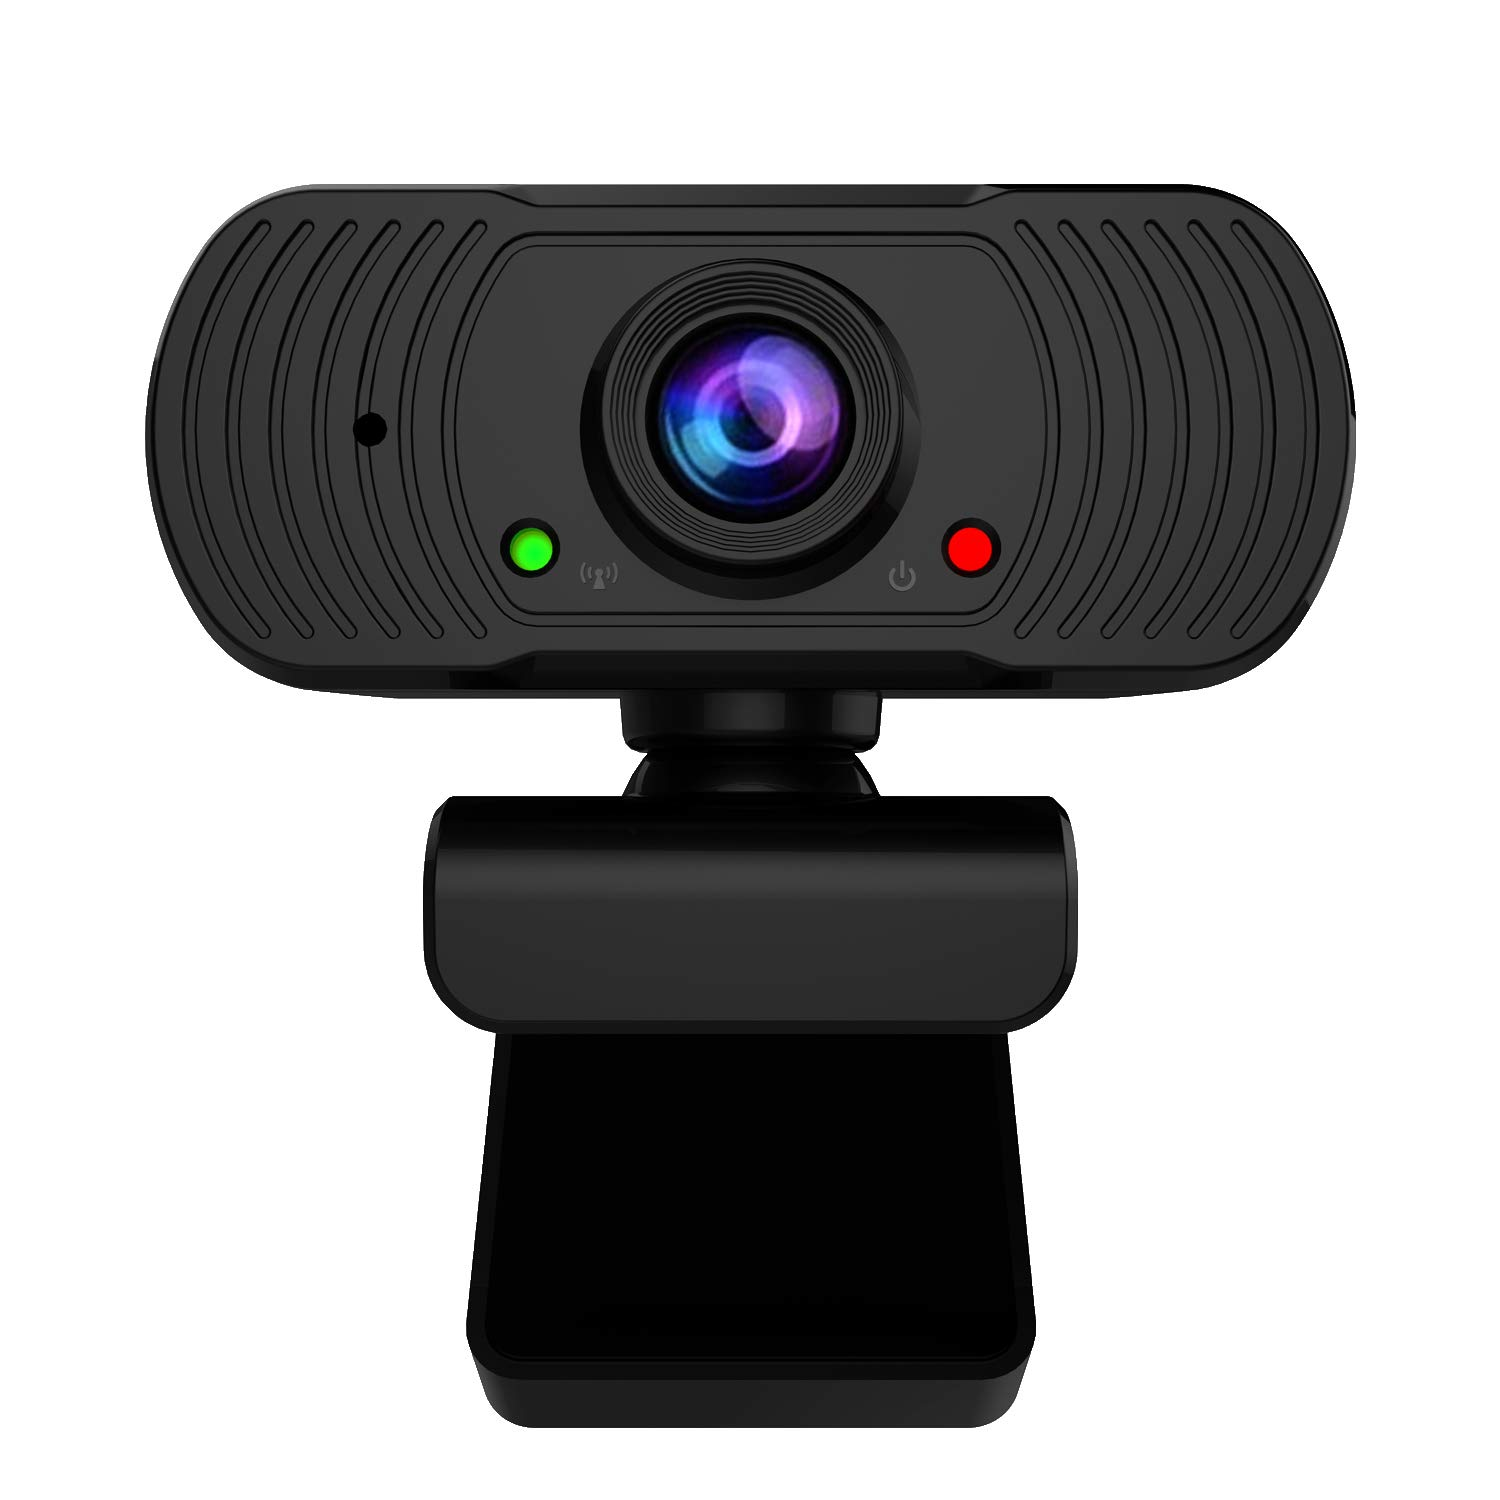 OZS 1080P Webcam with Microphone, USB Computer Camera for PC Desktop/Laptop, HD Streaming Webcam with Auto Focus for Widescreen Video Calling/Recording/Conferencing/Gaming/Online Teaching